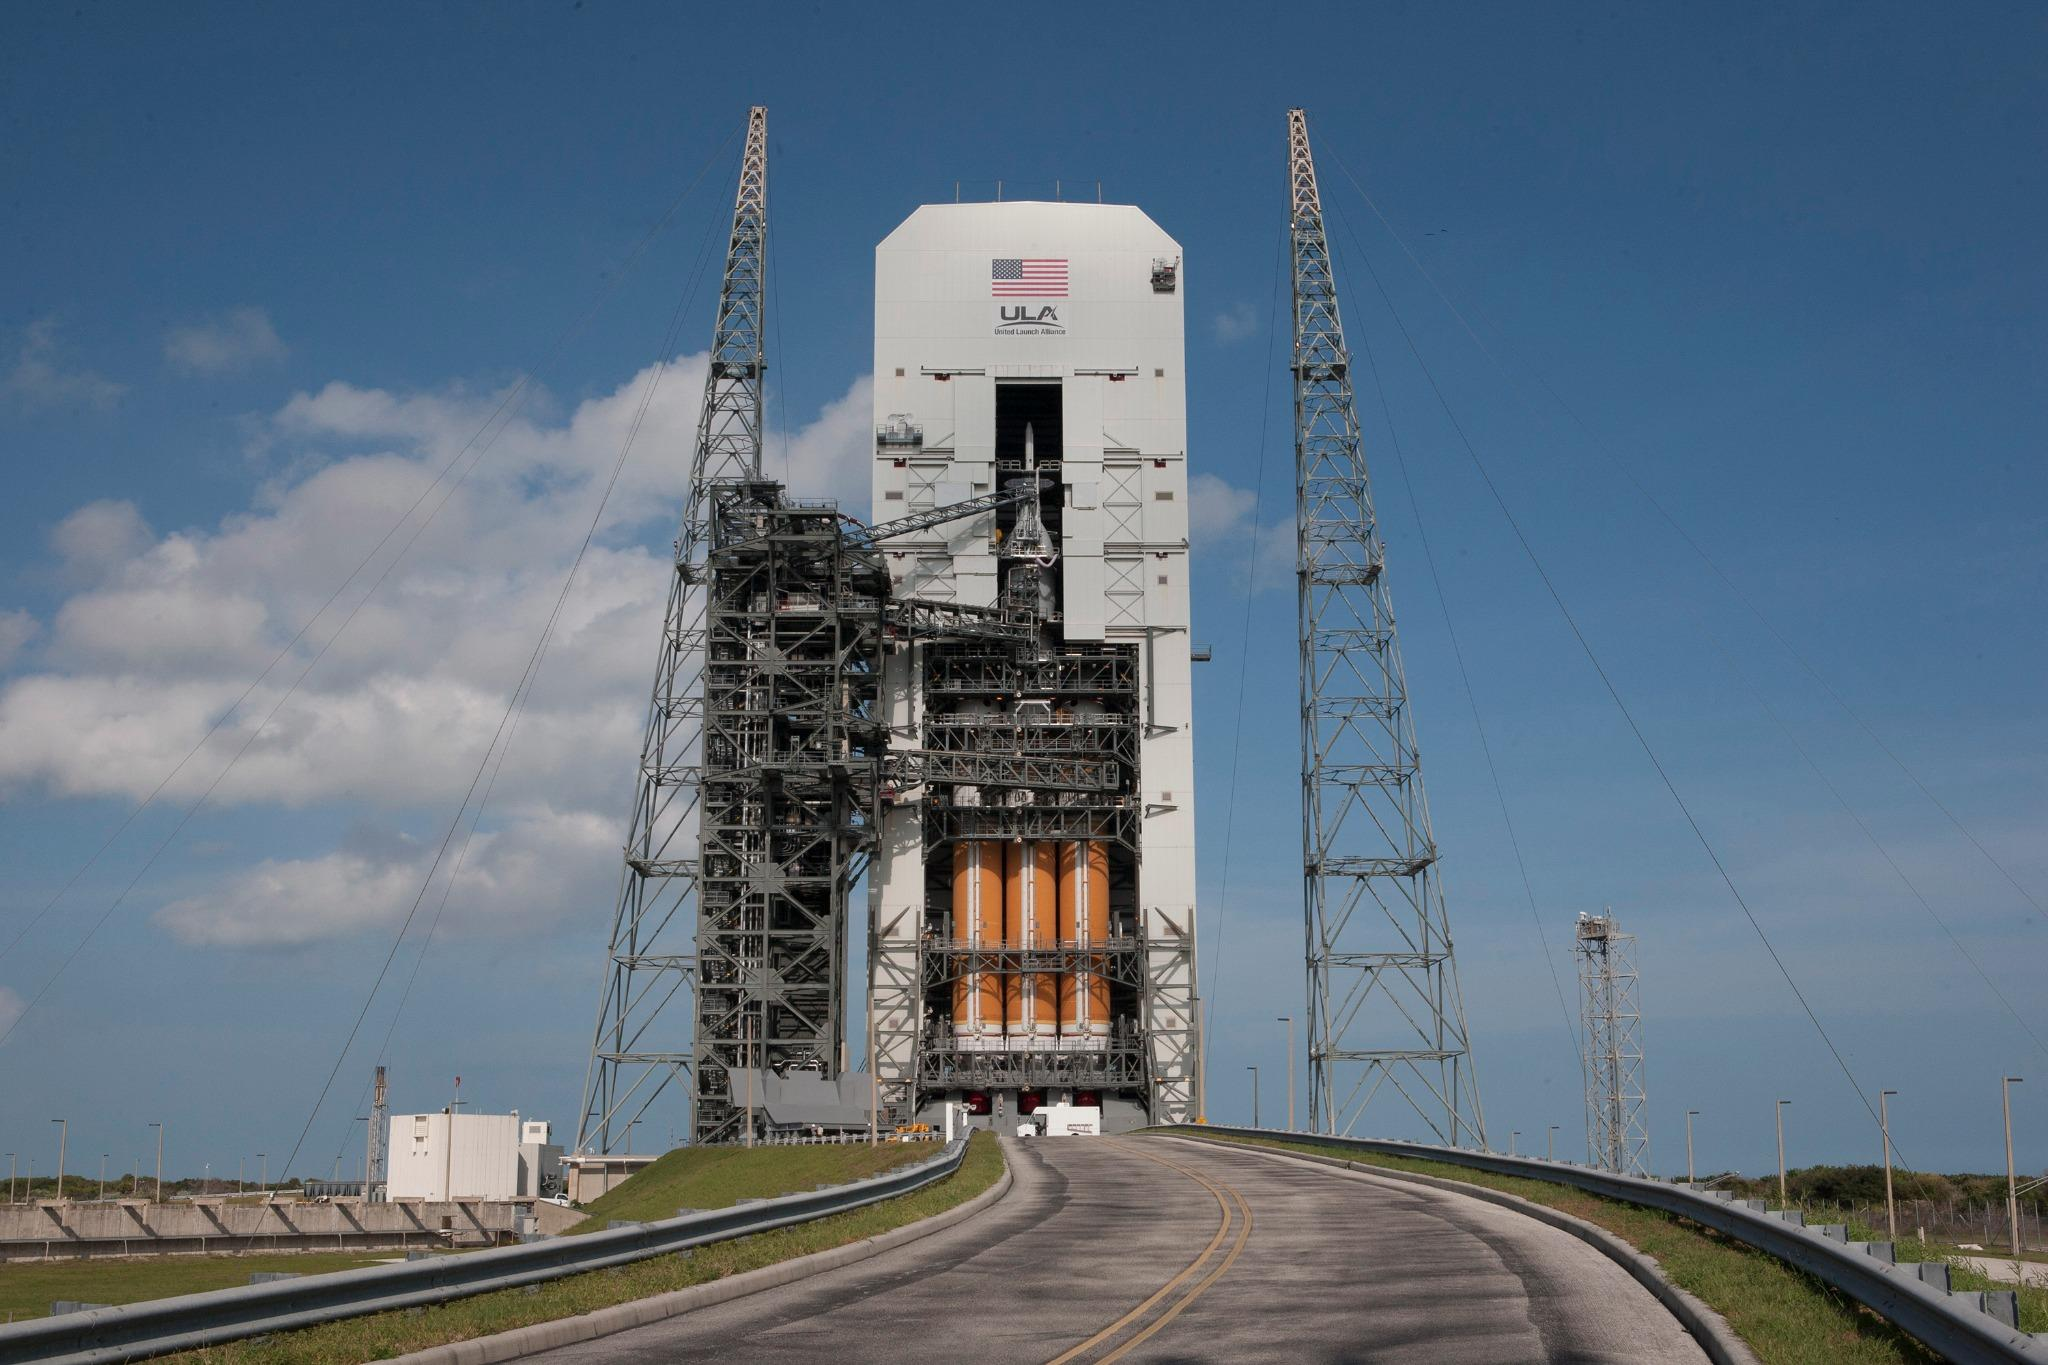 """""""@NASA #Orion is poised for its 1st trip to space.2 days away & weather 60% go: http://t.co/iRAEttfypW http://t.co/vWpyT4GboR"""" I LOVE this"""